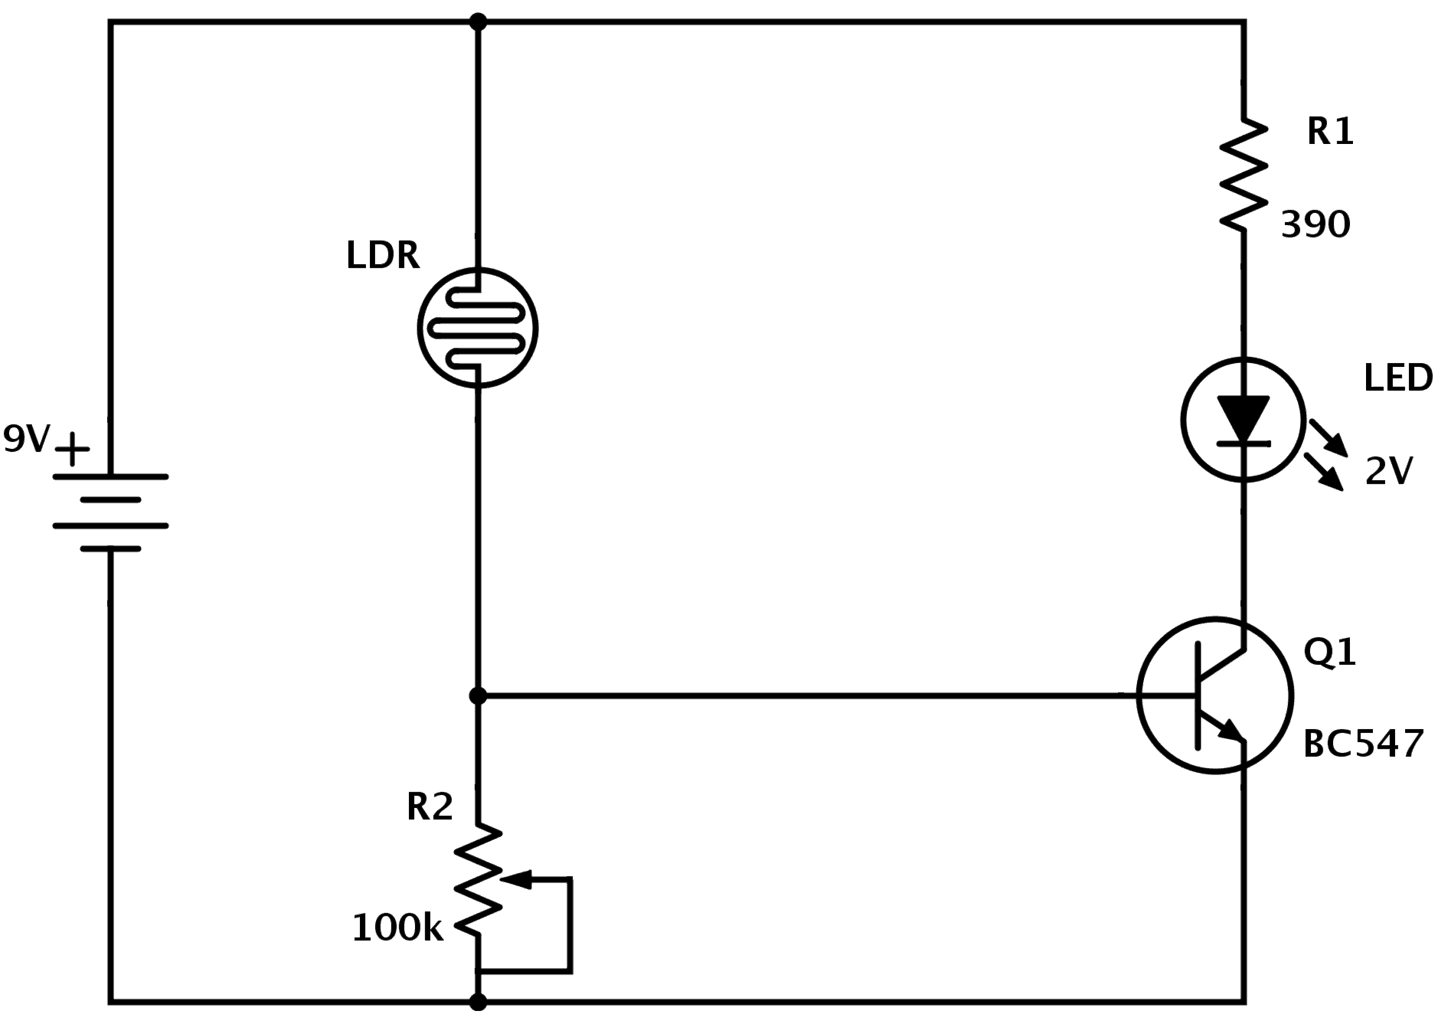 LDR circuit improved circuit diagram how to read and understand any schematic schematic circuit diagram at gsmportal.co